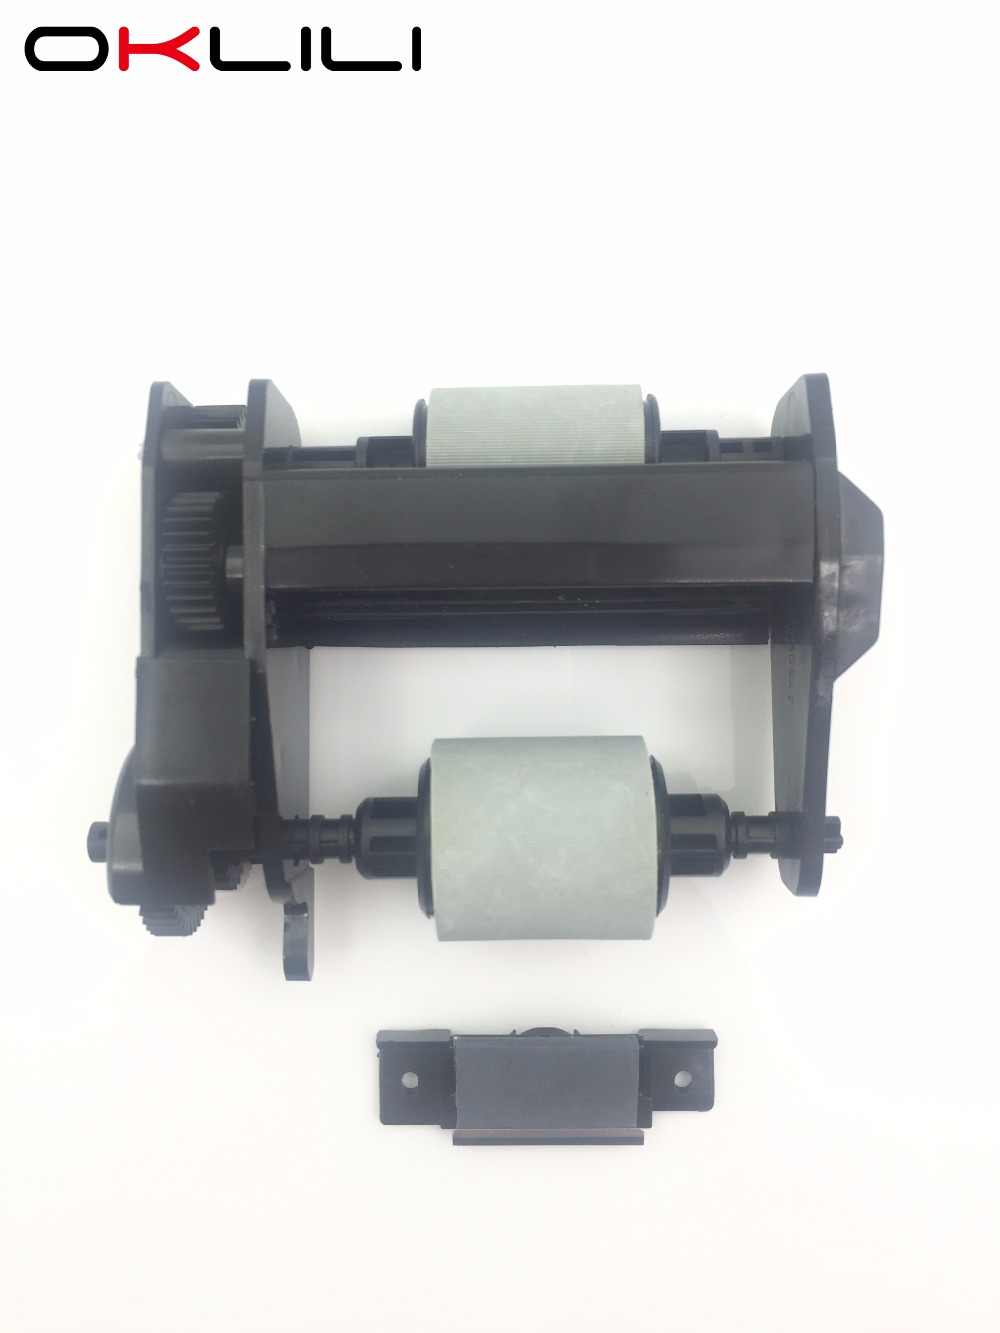 1SETX Q3948-67904 ADF Pickup Roller Separation Pad for HP 2820 2840 CM1312 CM2320 3050 3052 3055 3390 3392 M1522 M2727 M375 M475  original new laser printer spare parts adf pickup feed roller assembly for hp 2820 2840 adf maintenance kits pickup roller